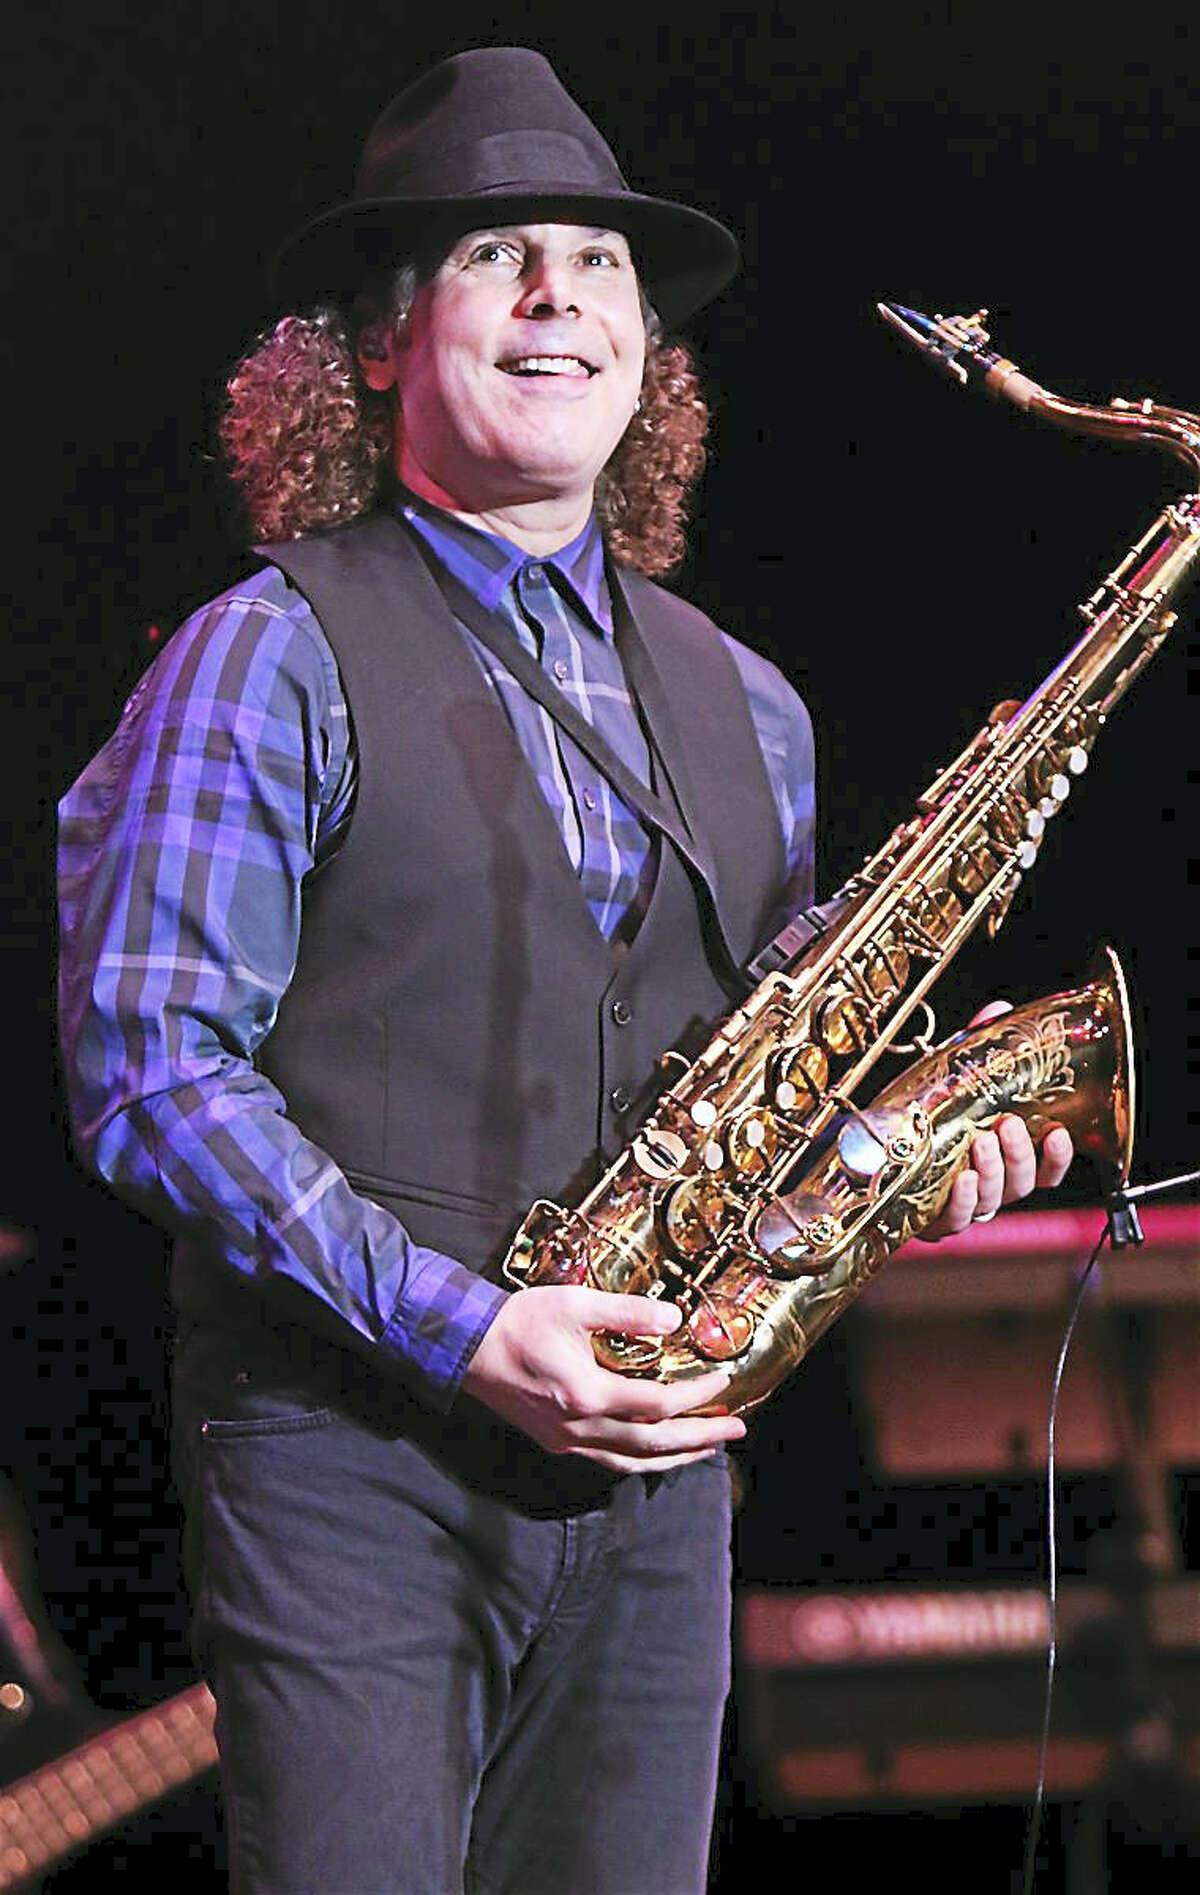 """Photo by John AtashianSaxophonist, songwriter and producer, Boney James, born James Oppenheim, is shown performing on stage during his May 7 concert at the Lyamn Center at Southern Connecticut State University in New Haven. Boney thoroughly entertained the sold out crowd of fans with his biggest hits plus songs from his latest album, """"Futuresoul"""". To view the entire list of upcoming entertainment coming to the Lyman Center, visit www.southernct.edu/lyman."""